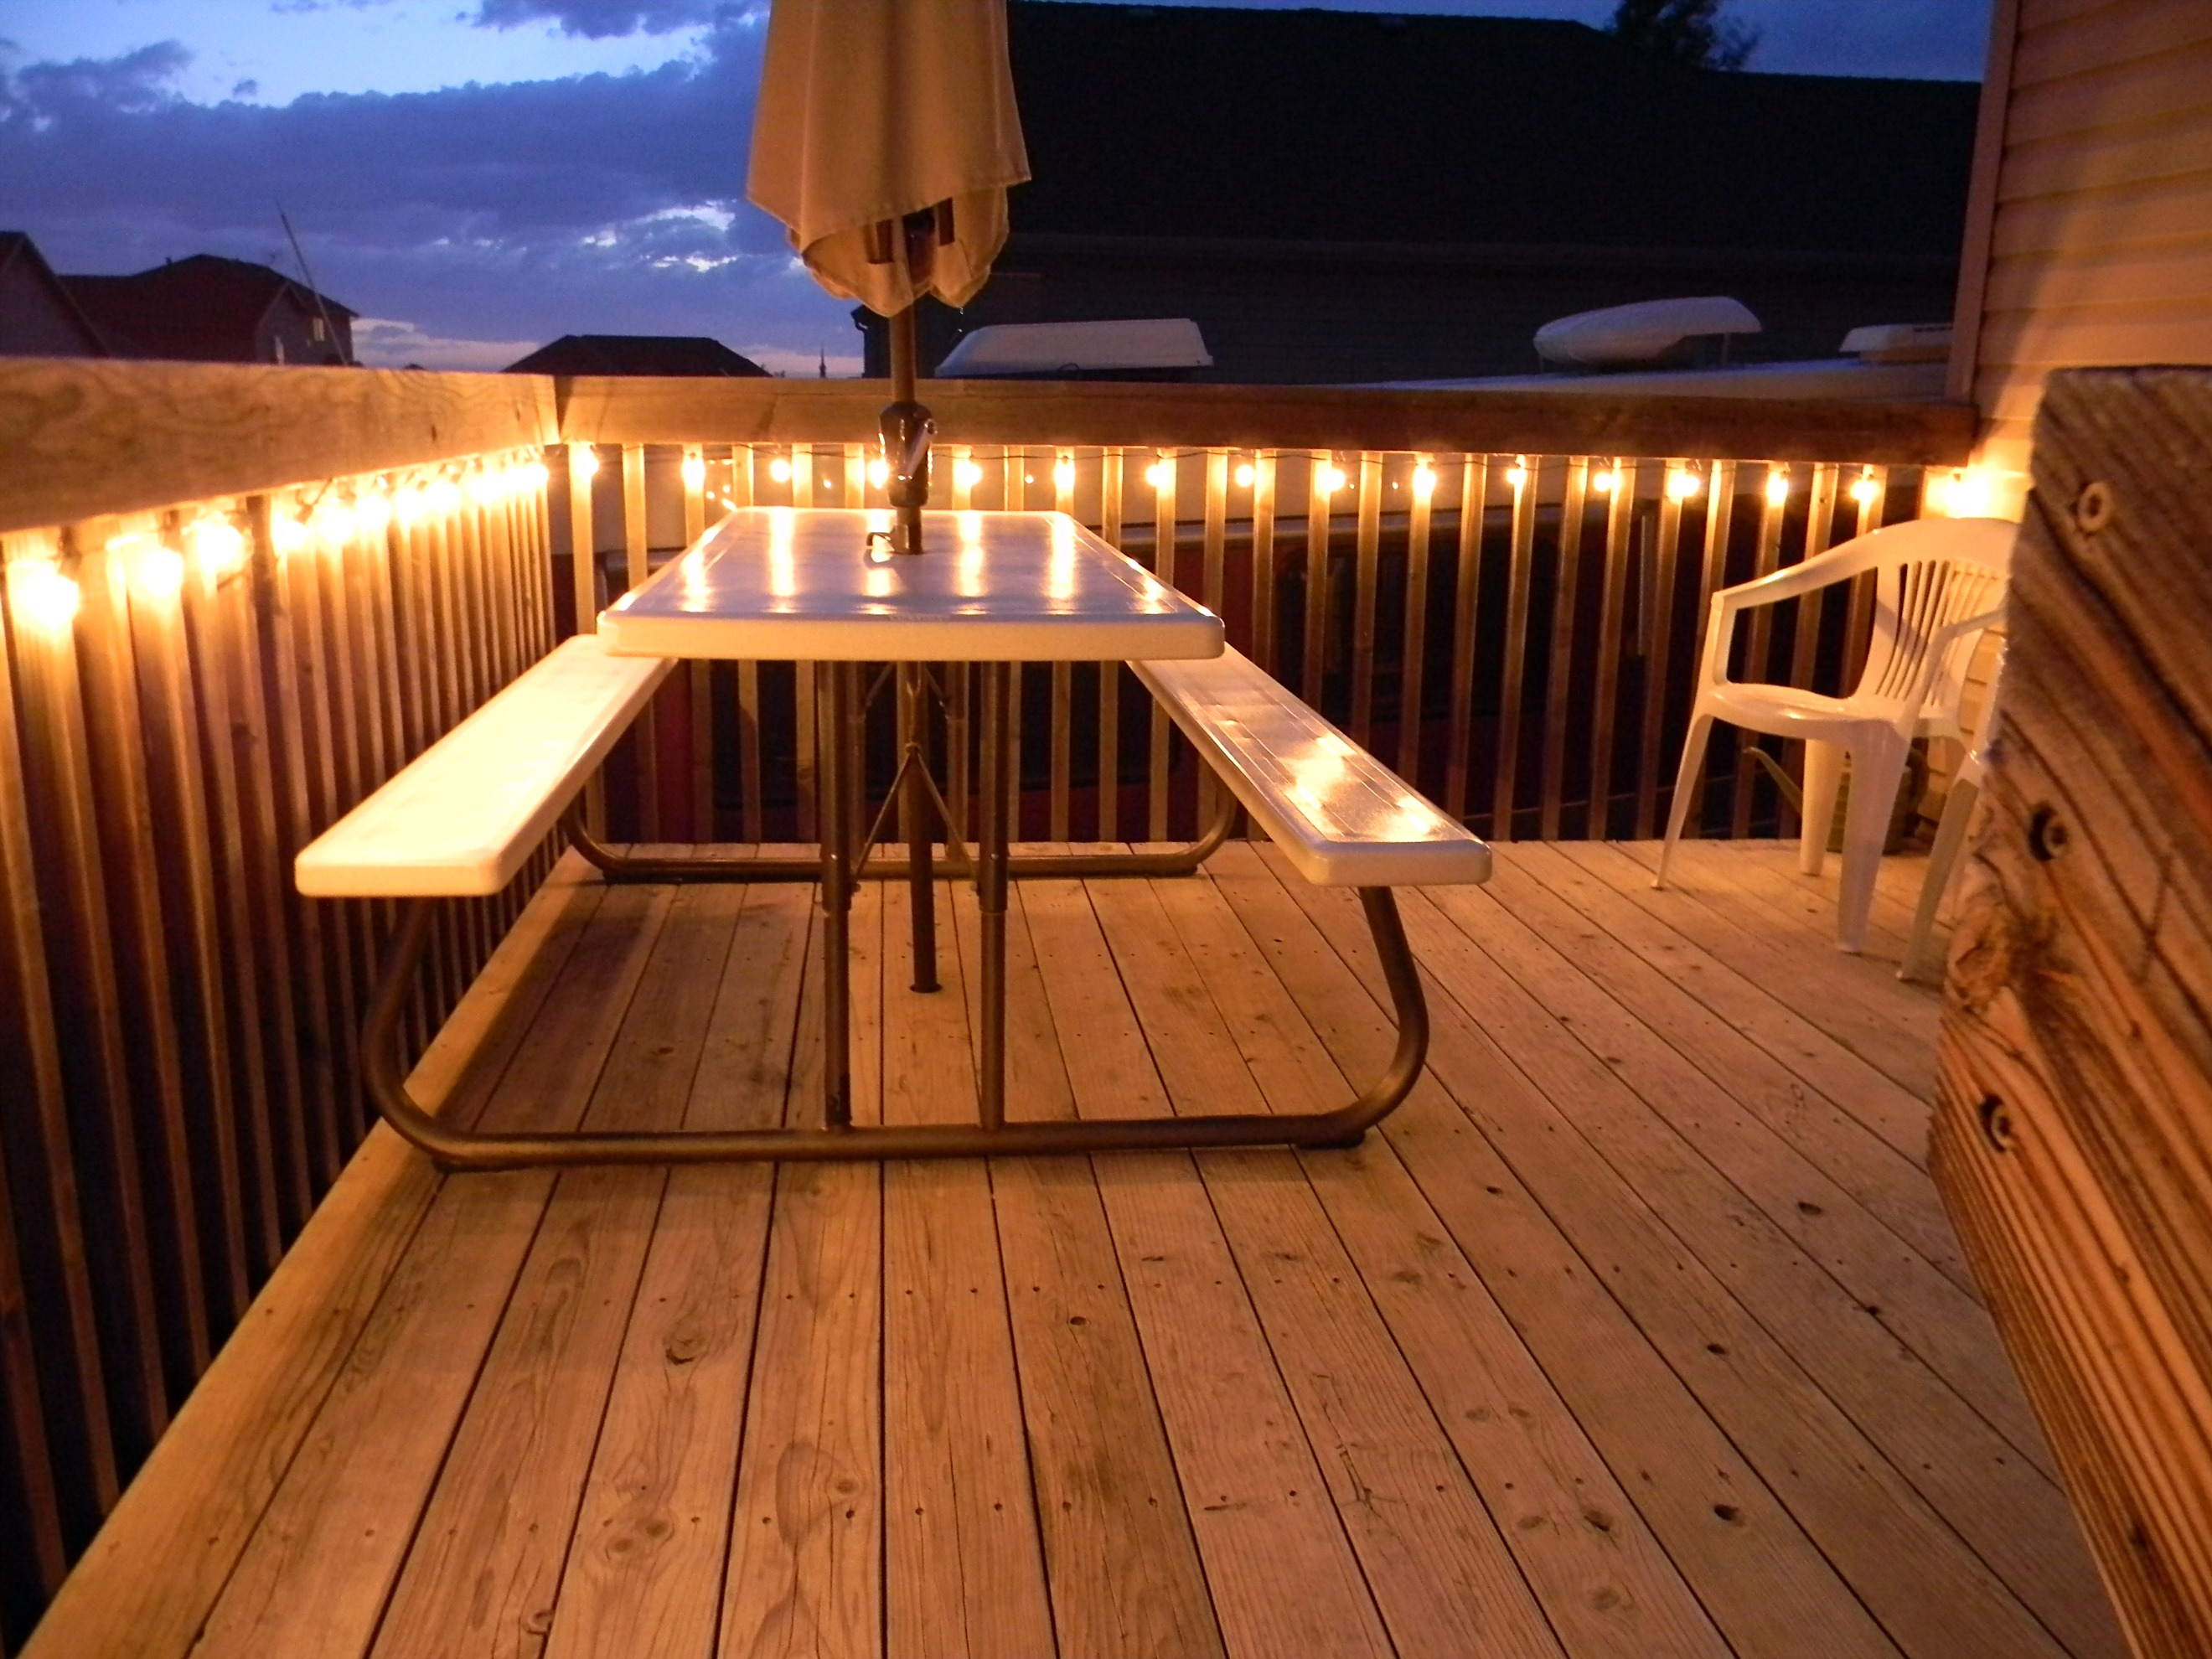 Outdoor String Lights On Fence : Light Up the Night - Deck Lighting Ideas - Cedar Works